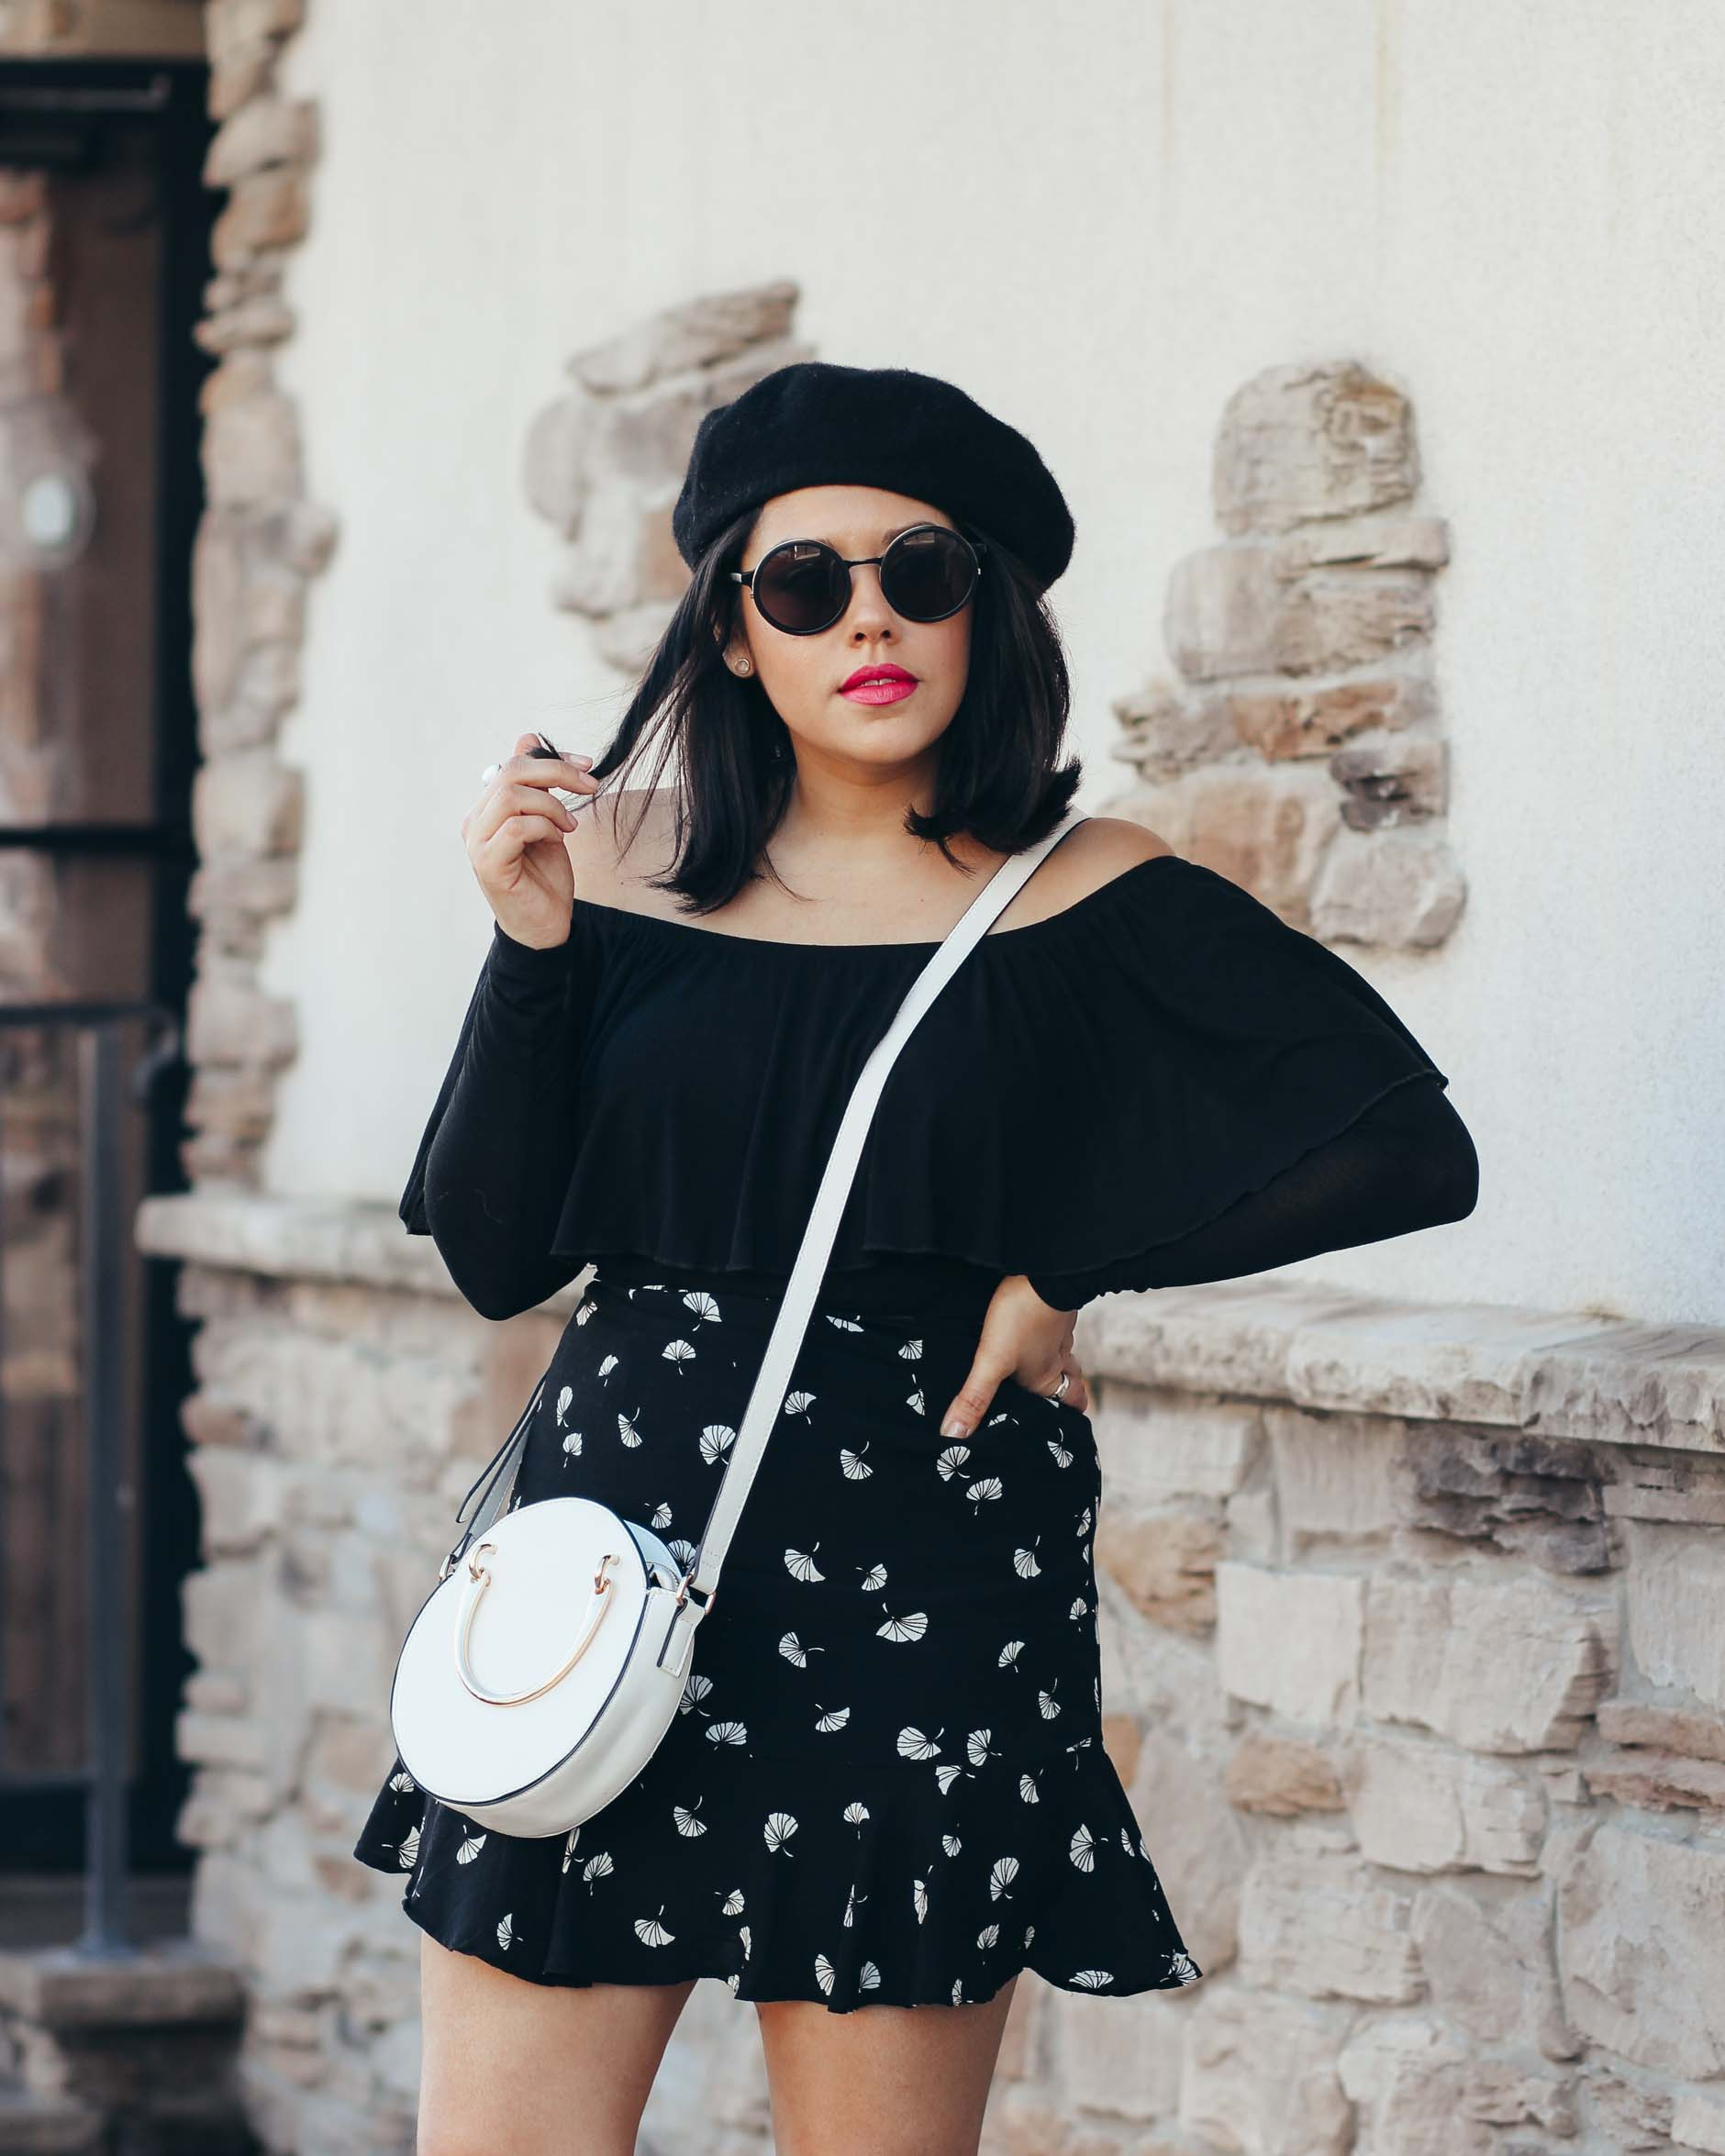 naty michele wearing a beret and off the shoulder top